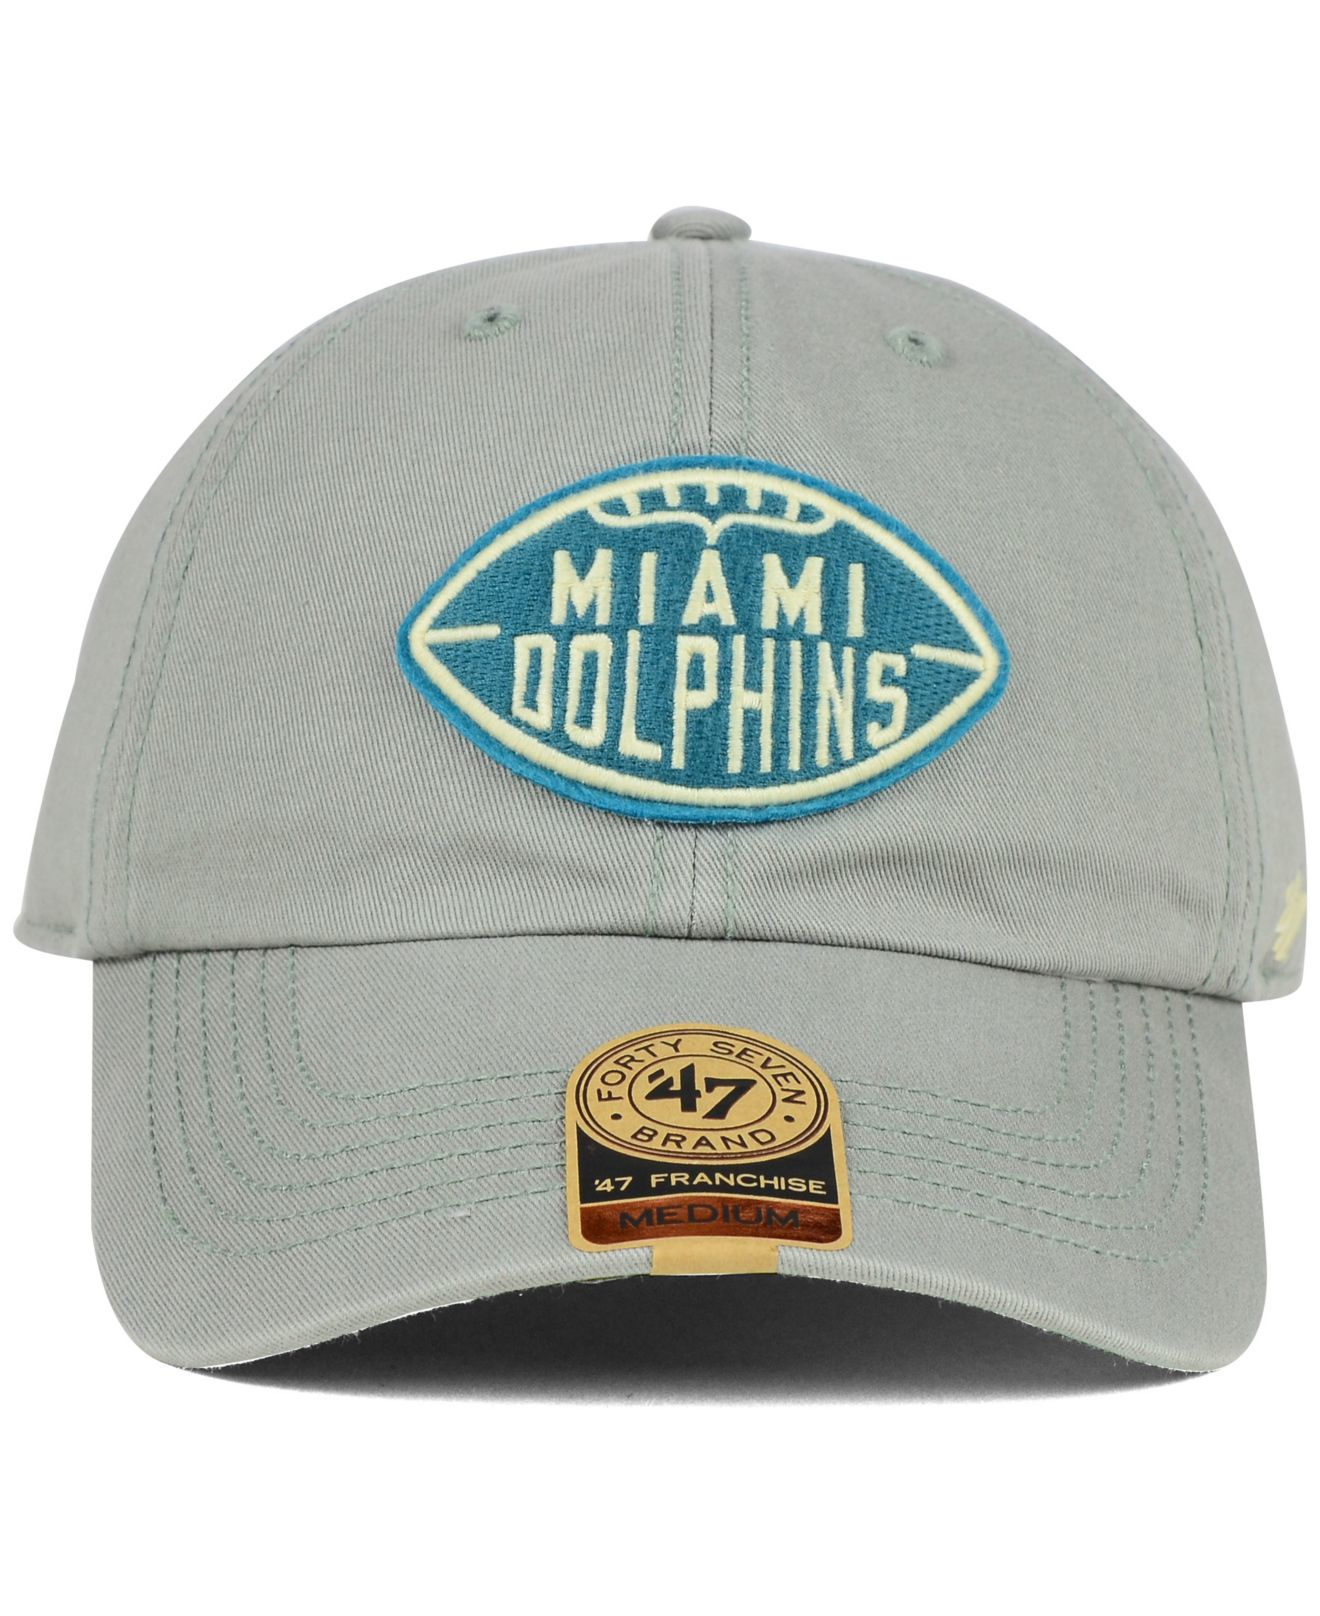 wholesale dolphins beanie hat tricks 2780e 6c553 9f2127610